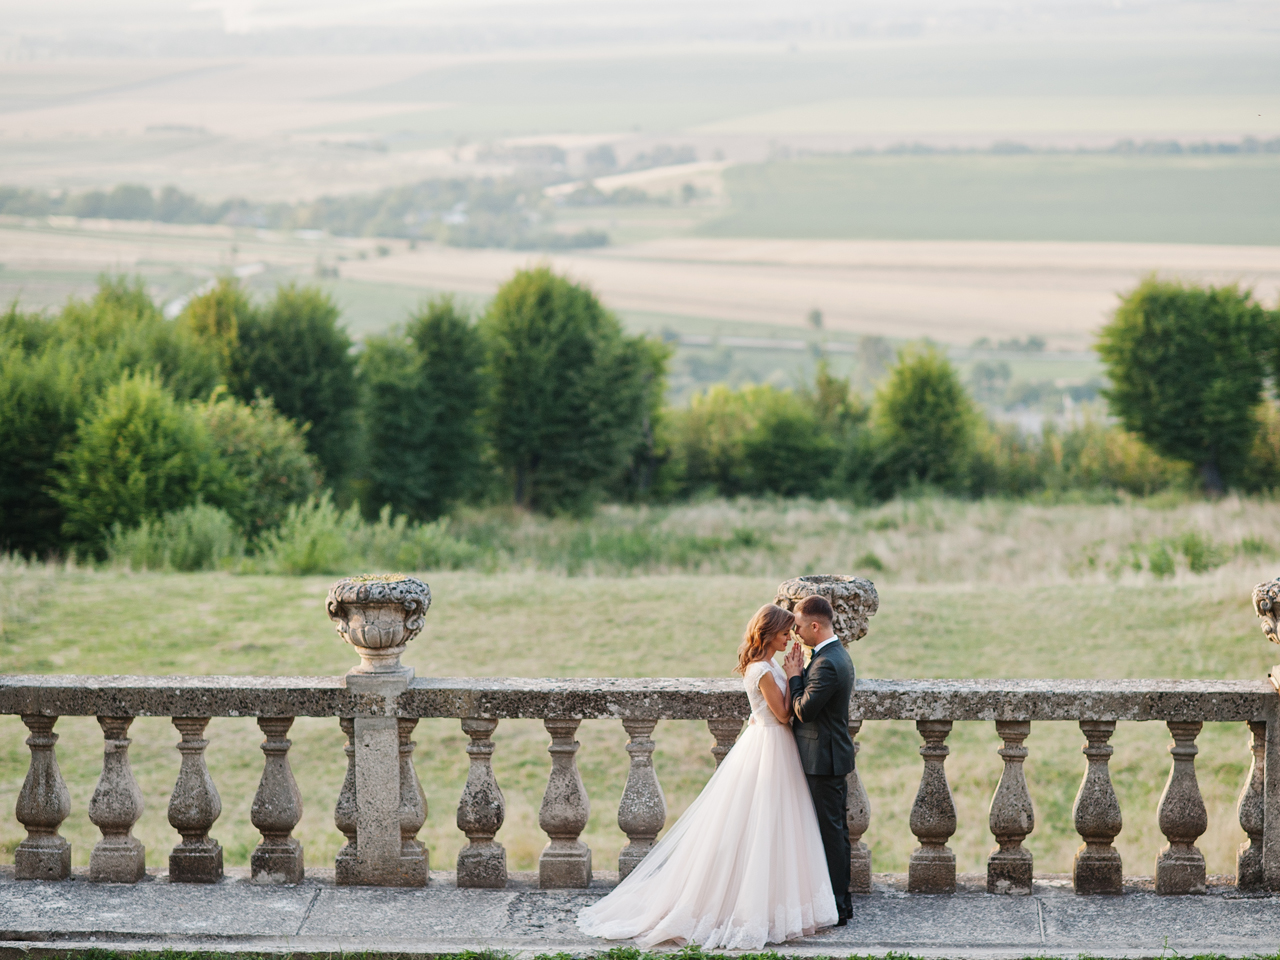 Fairytale wedding - 6 tips for a perfect castle wedding